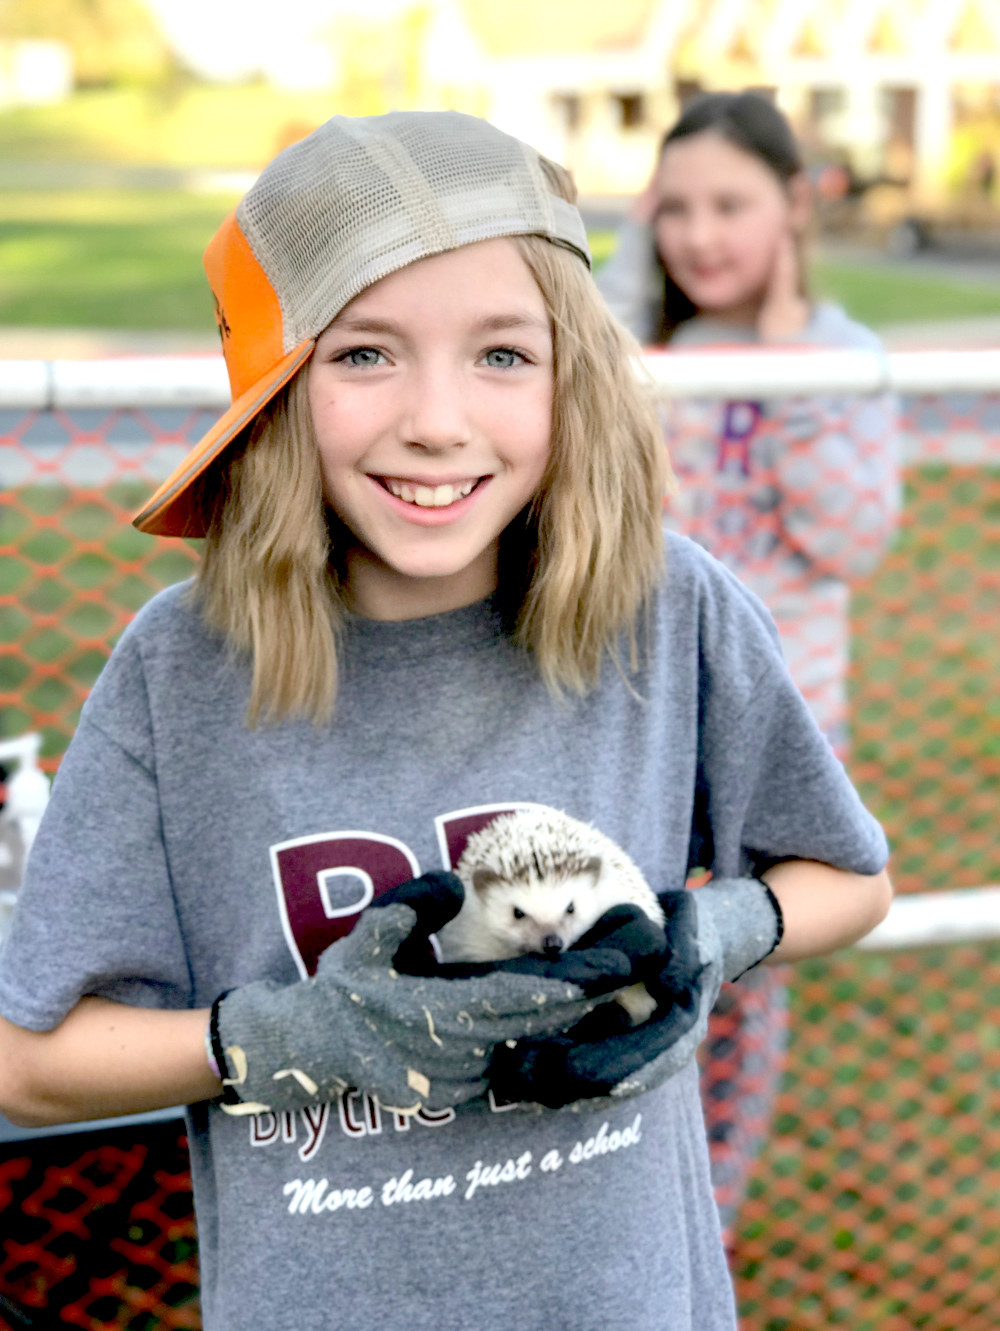 CLAIRE PHILLIPS holds one of the hedgehogs from the Little Country Farm and Petting Zoo, at the fall festival held at Blythe-Bower Elementary School.